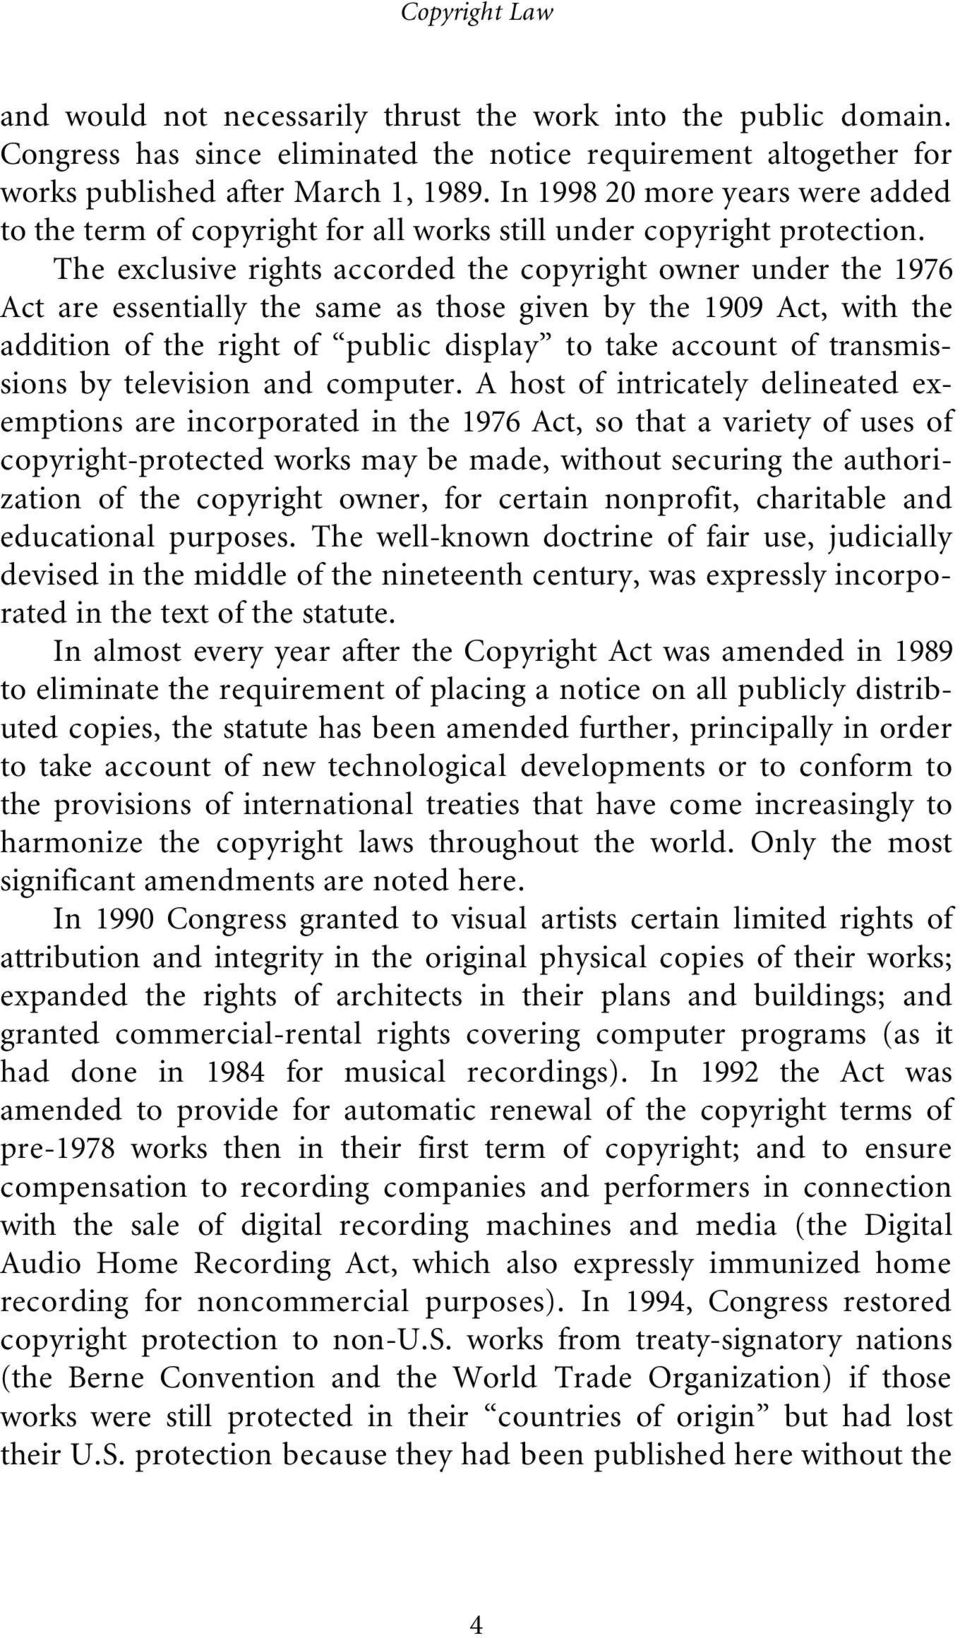 The exclusive rights accorded the copyright owner under the 1976 Act are essentially the same as those given by the 1909 Act, with the addition of the right of public display to take account of